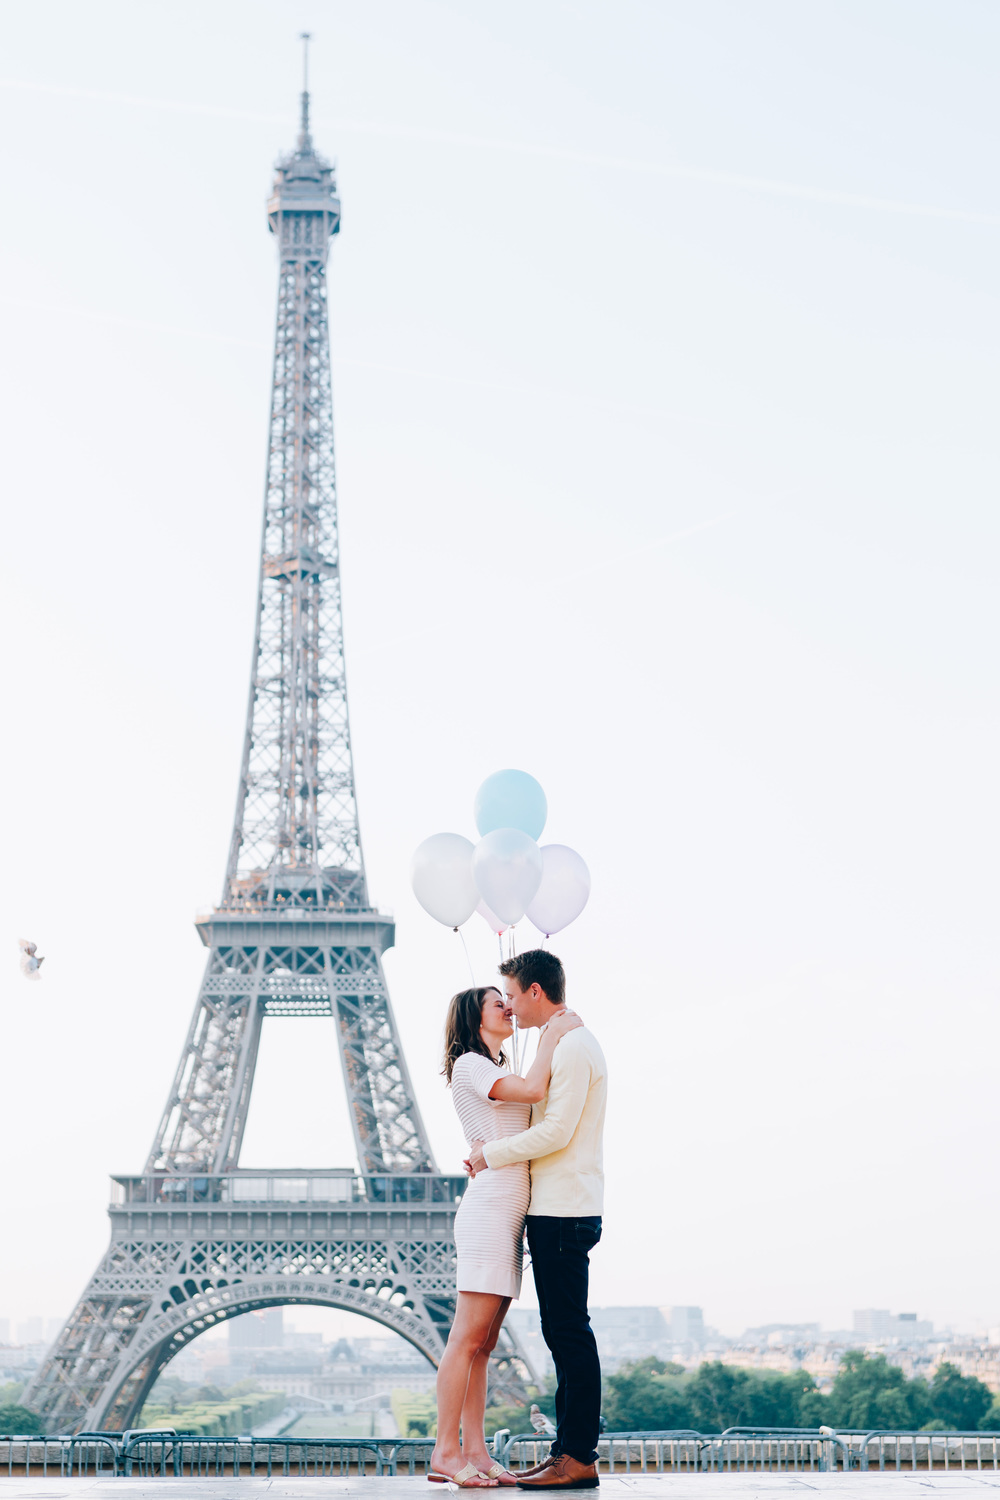 Paris-Photographer-Eiffel-Tower-Surprise-Proposal-Pigeons-Kiss-Iheartparisfr.jpg